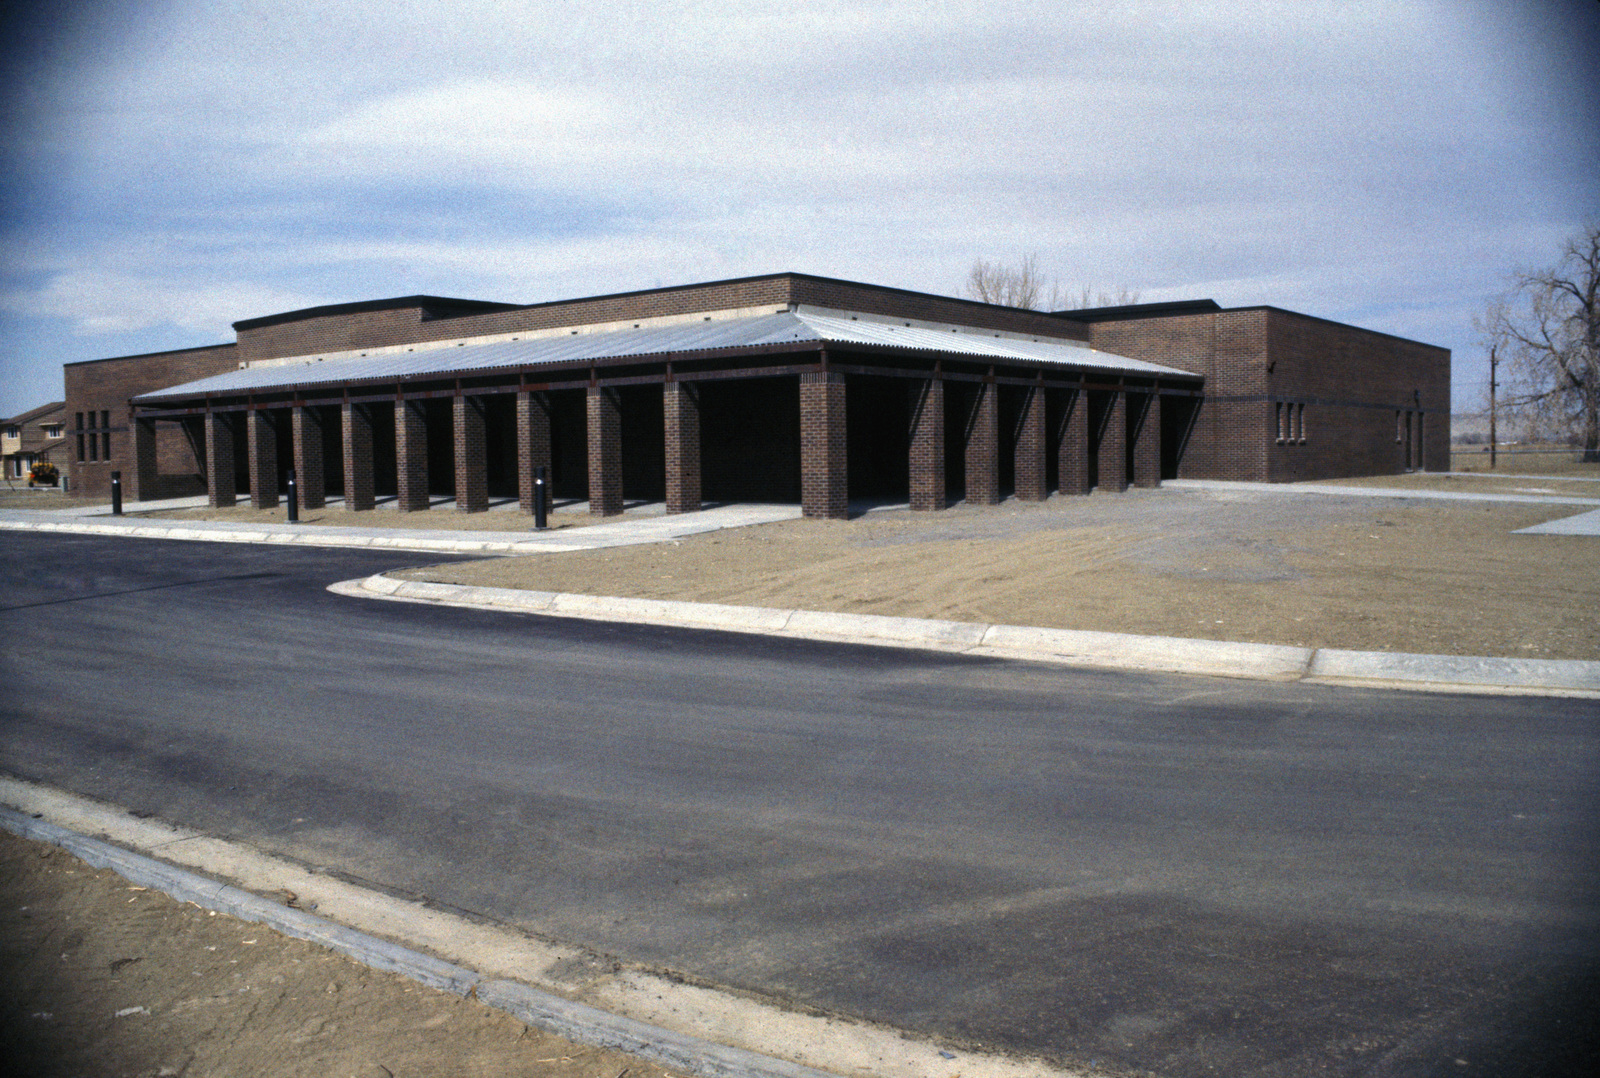 A newly constructed base exchange, commissary and recreation center complex at the Strategic Air Command's Strategic Training Range